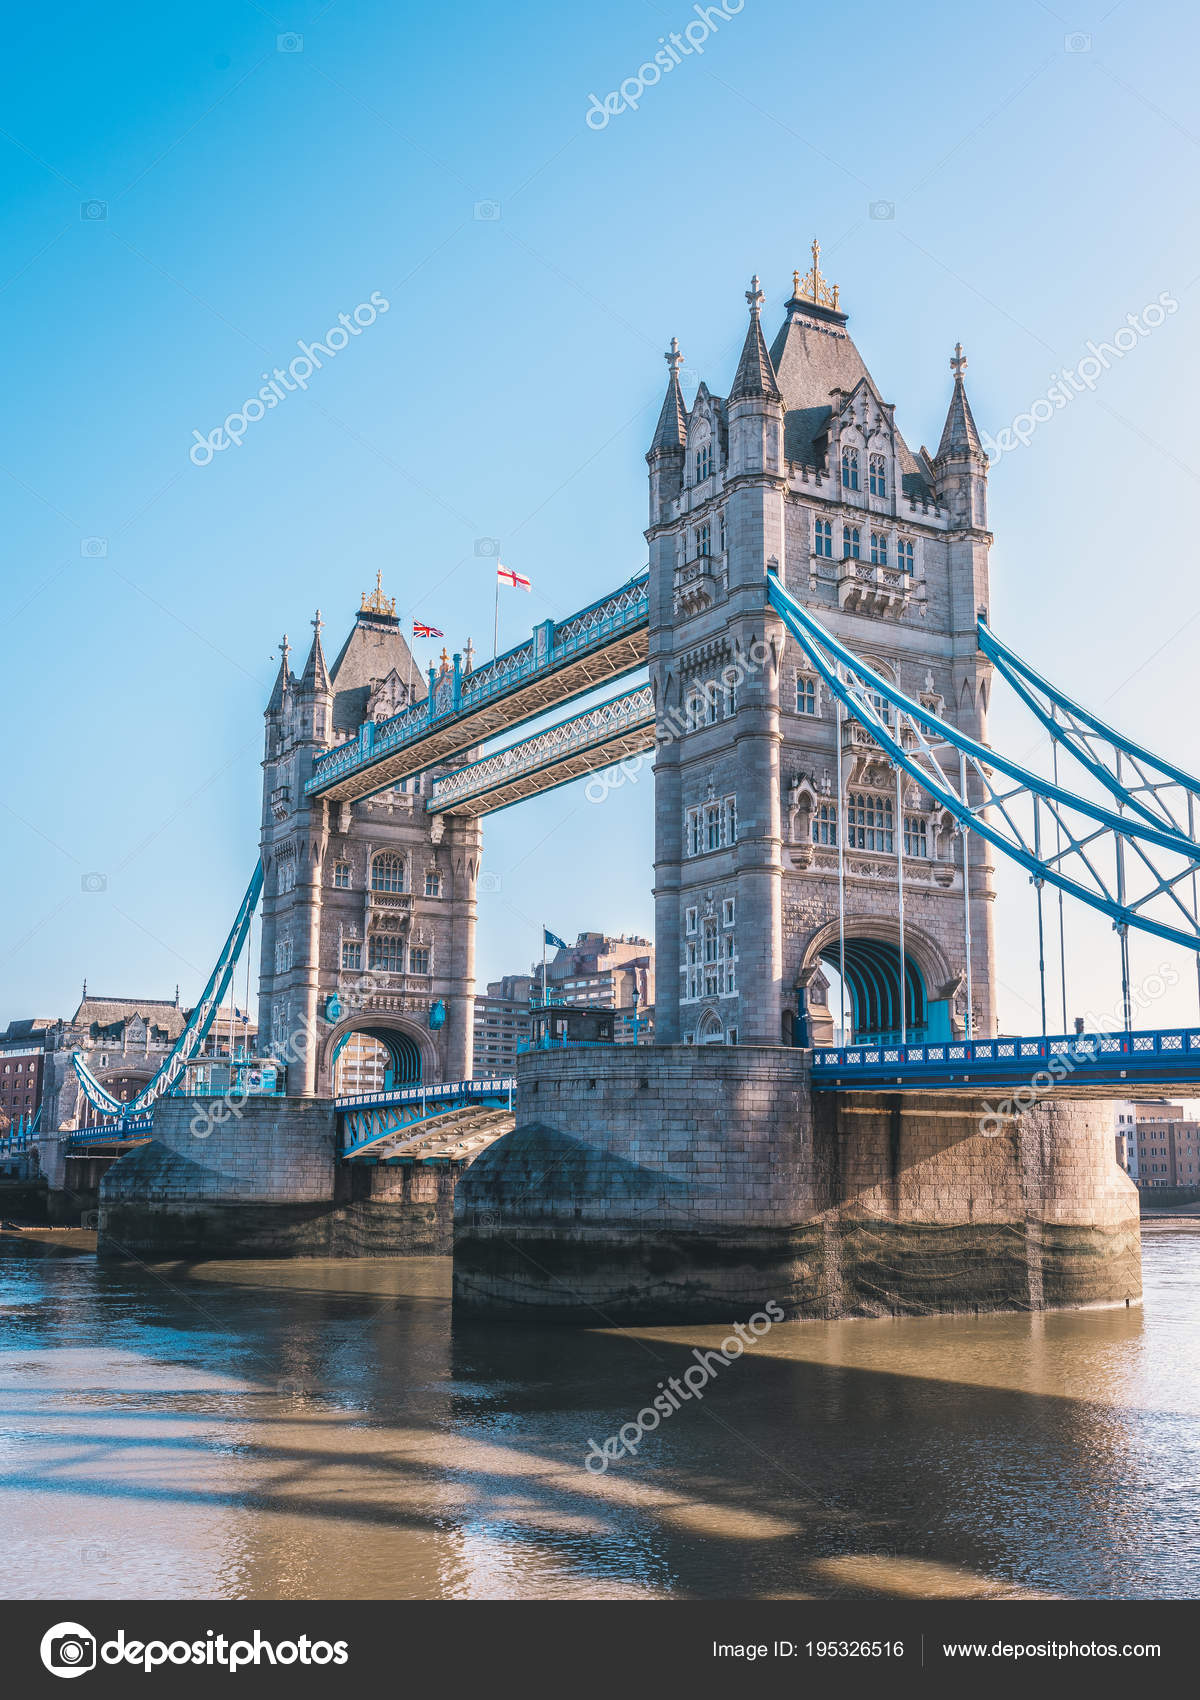 World Famous Tower Bridge Over River Thames On Bright Sunny Day National Symbols Of England Photo By Chensey7